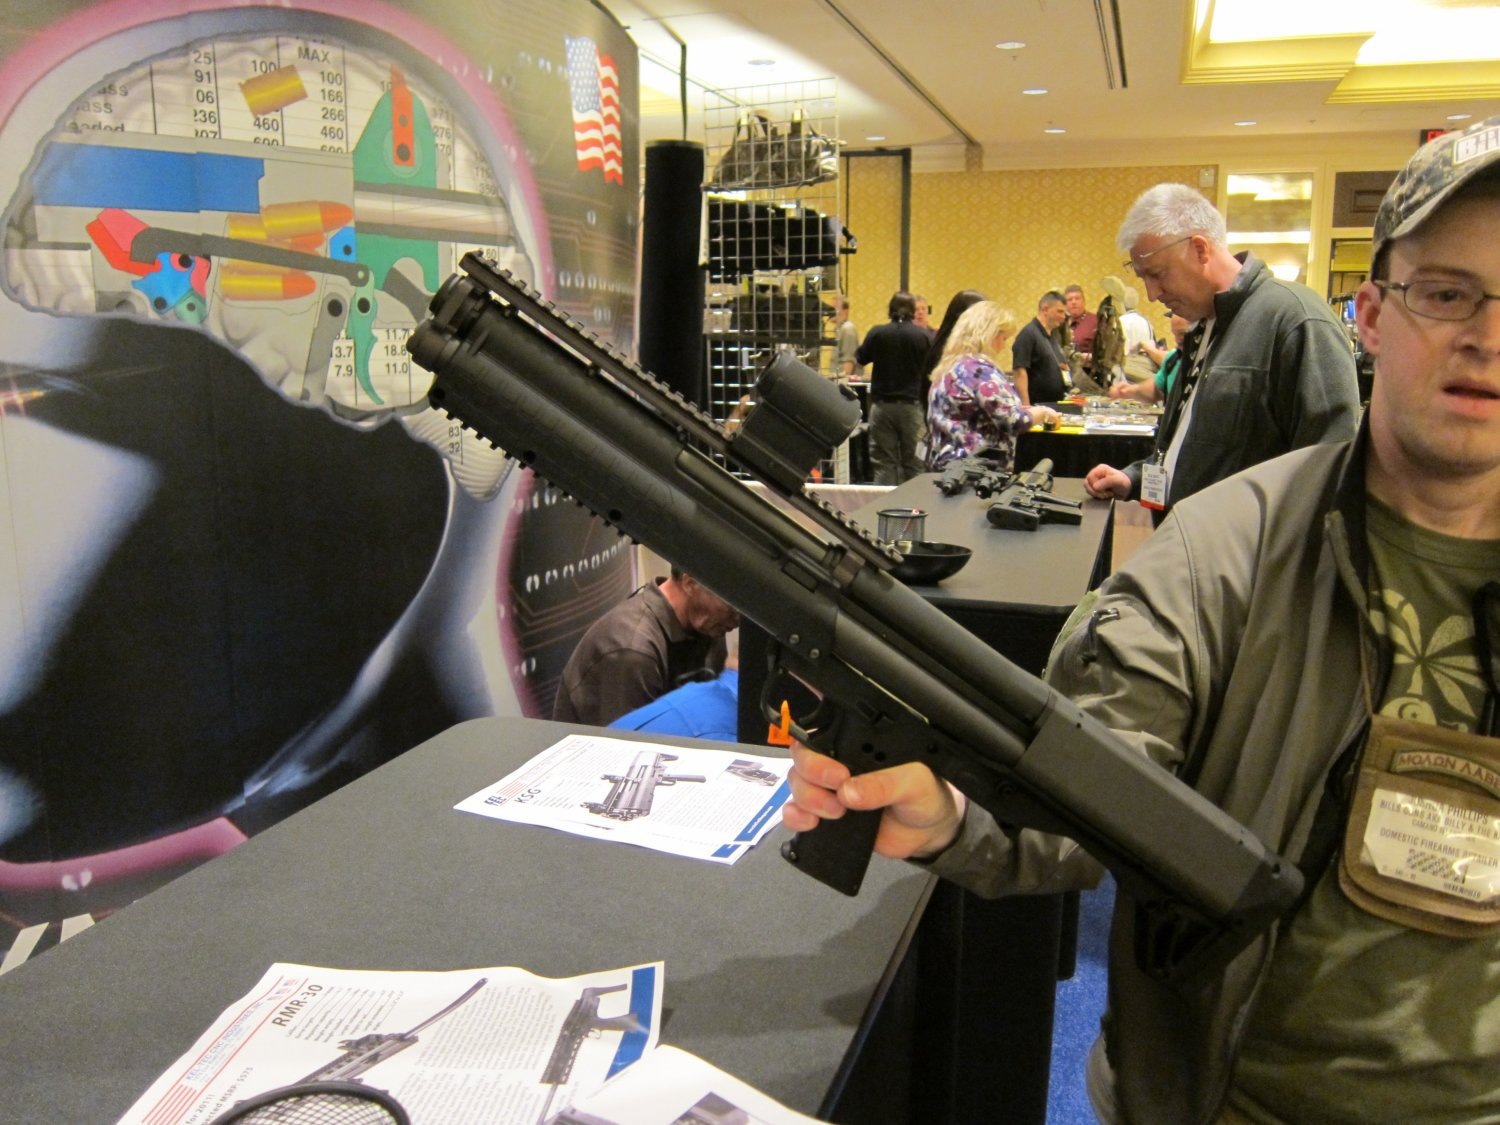 Kel Tec KSG Shotgun SHOT Show 2011 1 <!  :en  >Kel Tec KSG Shotgun: 15 Round (14+1) Bullpup Pump Action 12 Gauge Combat Shotgun for Urban Tactical Operations and Applications (Photos and Video!)<!  :  >